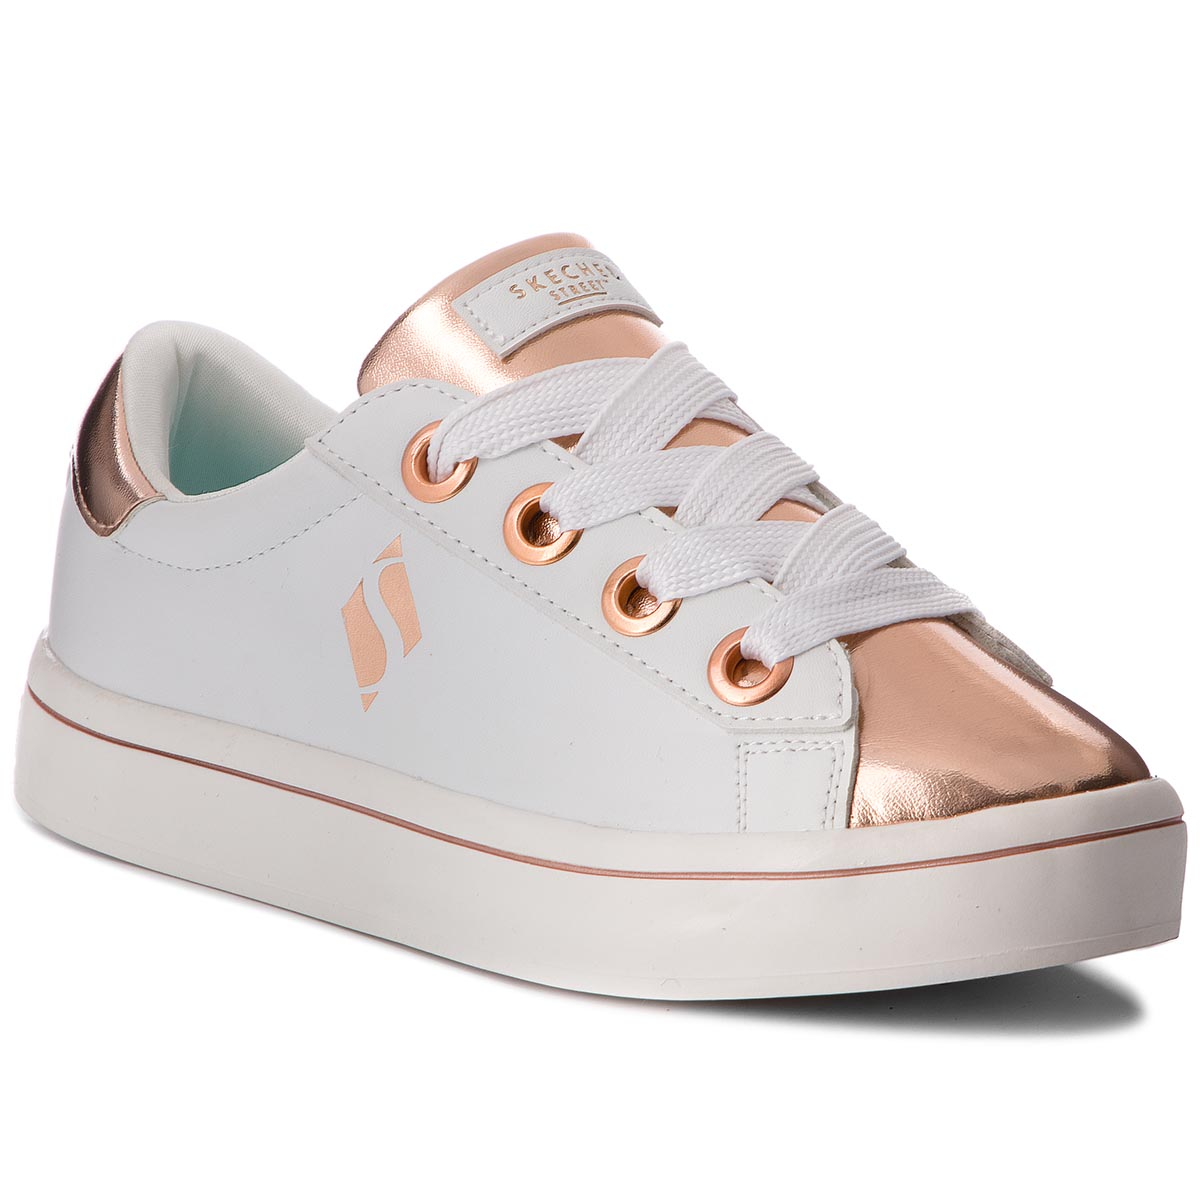 Sneakers SKECHERS - Medal Toes 84688L/WTRG White Rose Gold